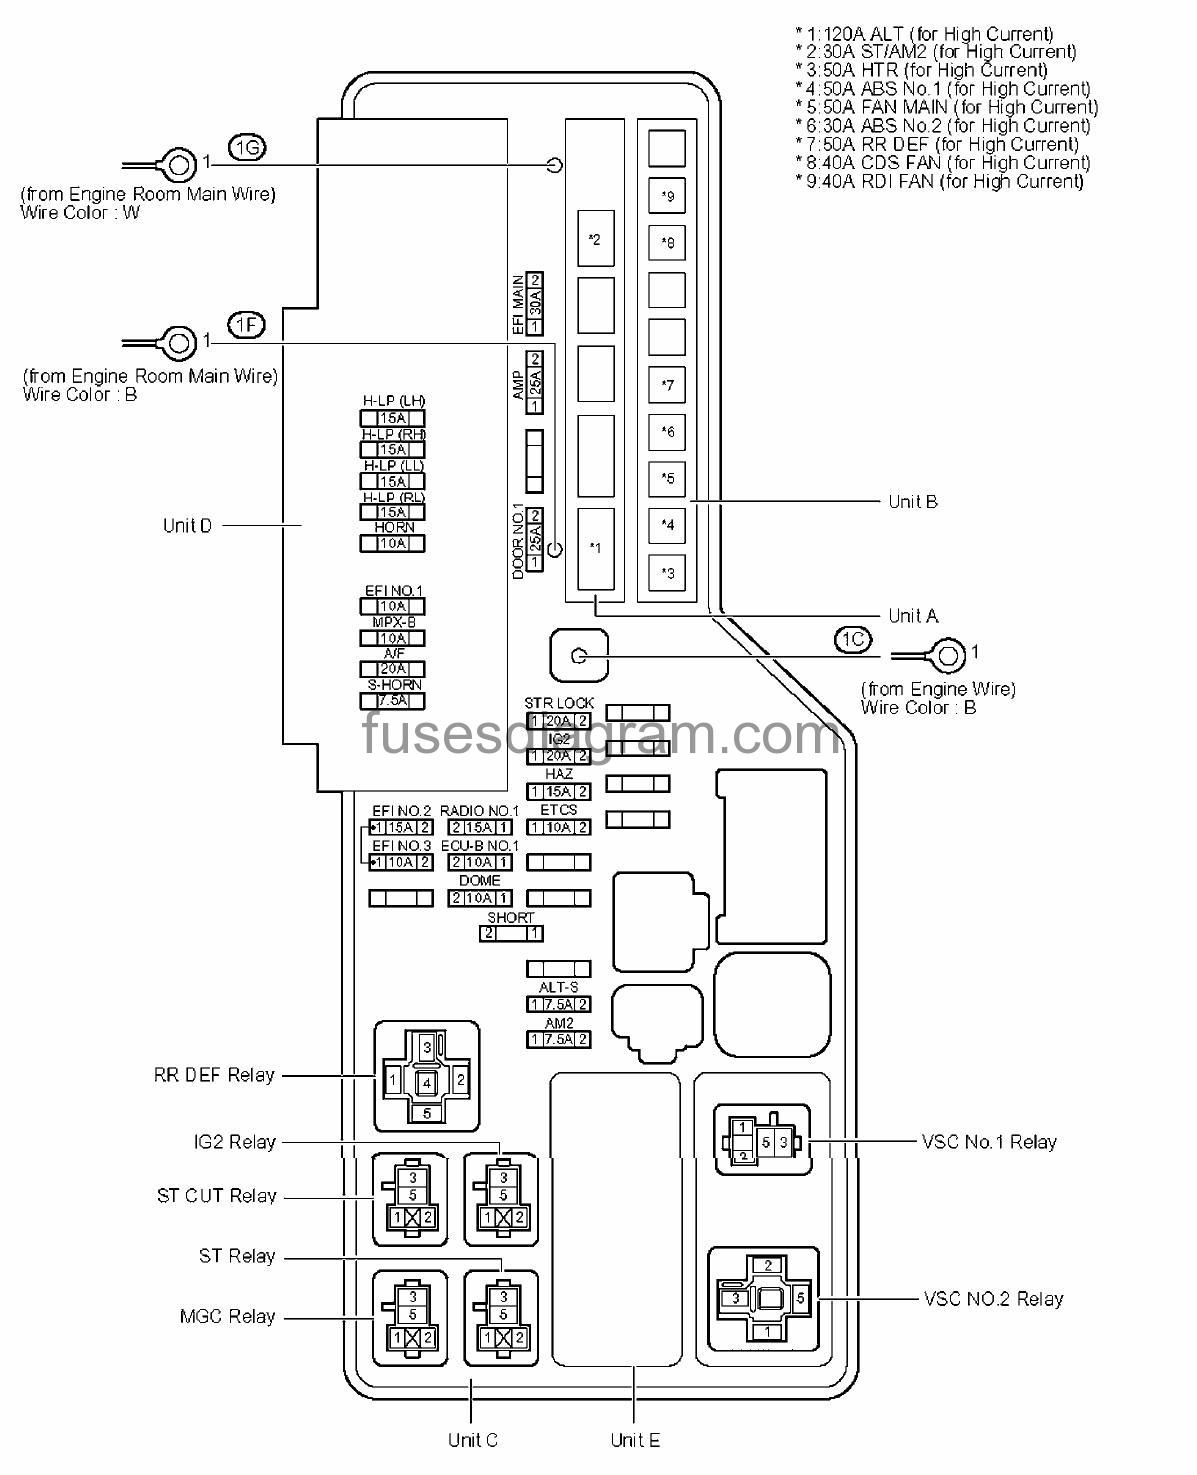 [WLLP_2054]   F430AC5 Vauxhall Zafira Fuse Box Diagram 2005 | Wiring Resources | Zafira Fuse Box Layout |  | Wiring Resources